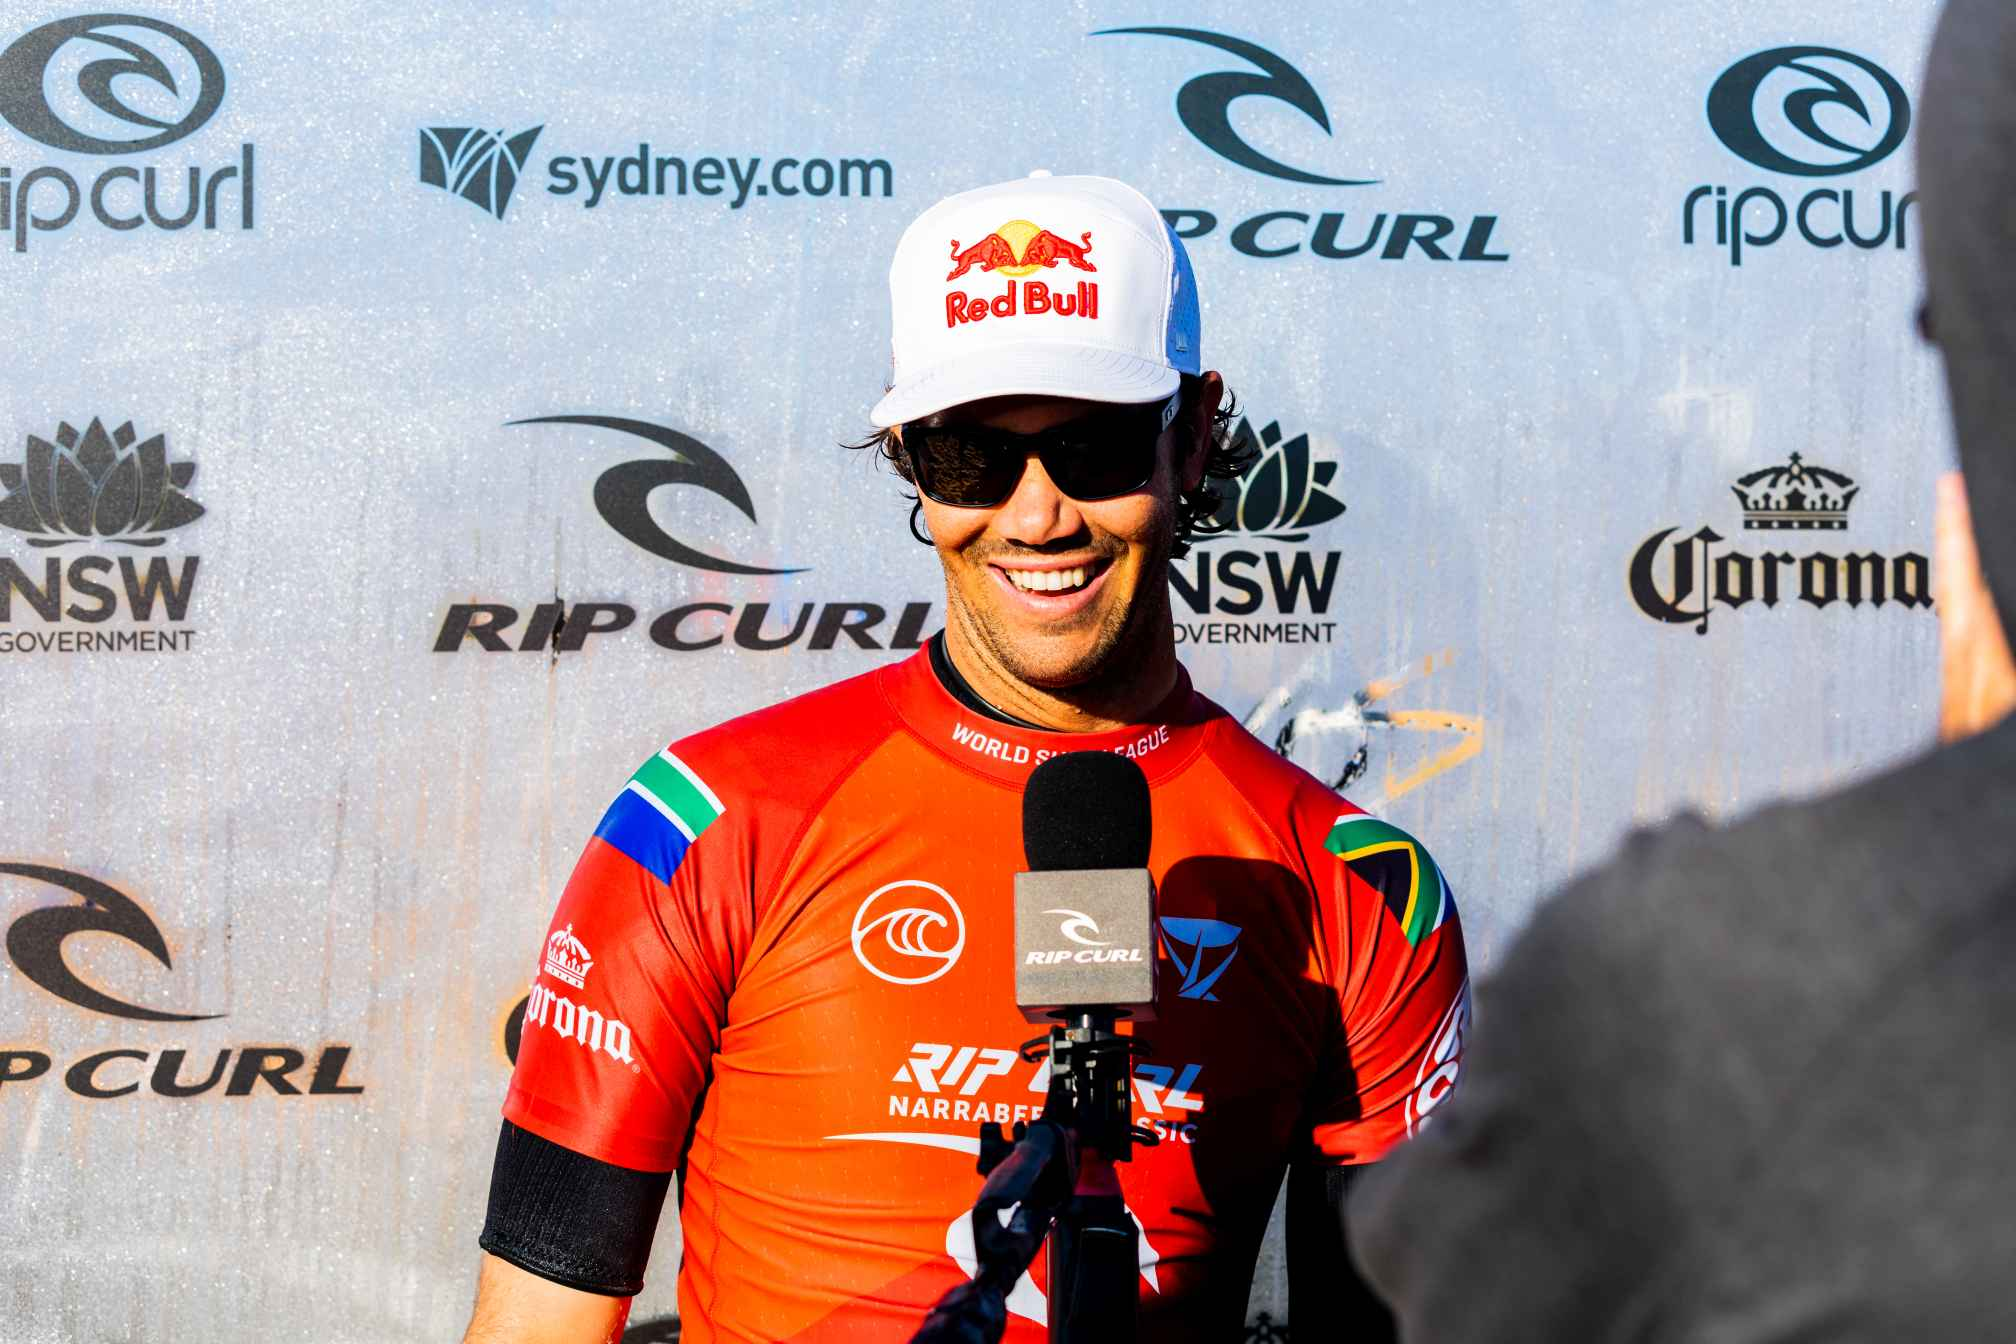 wsl rip curl narrabeen classic smith j0E1A9809NARRABEEN21miers